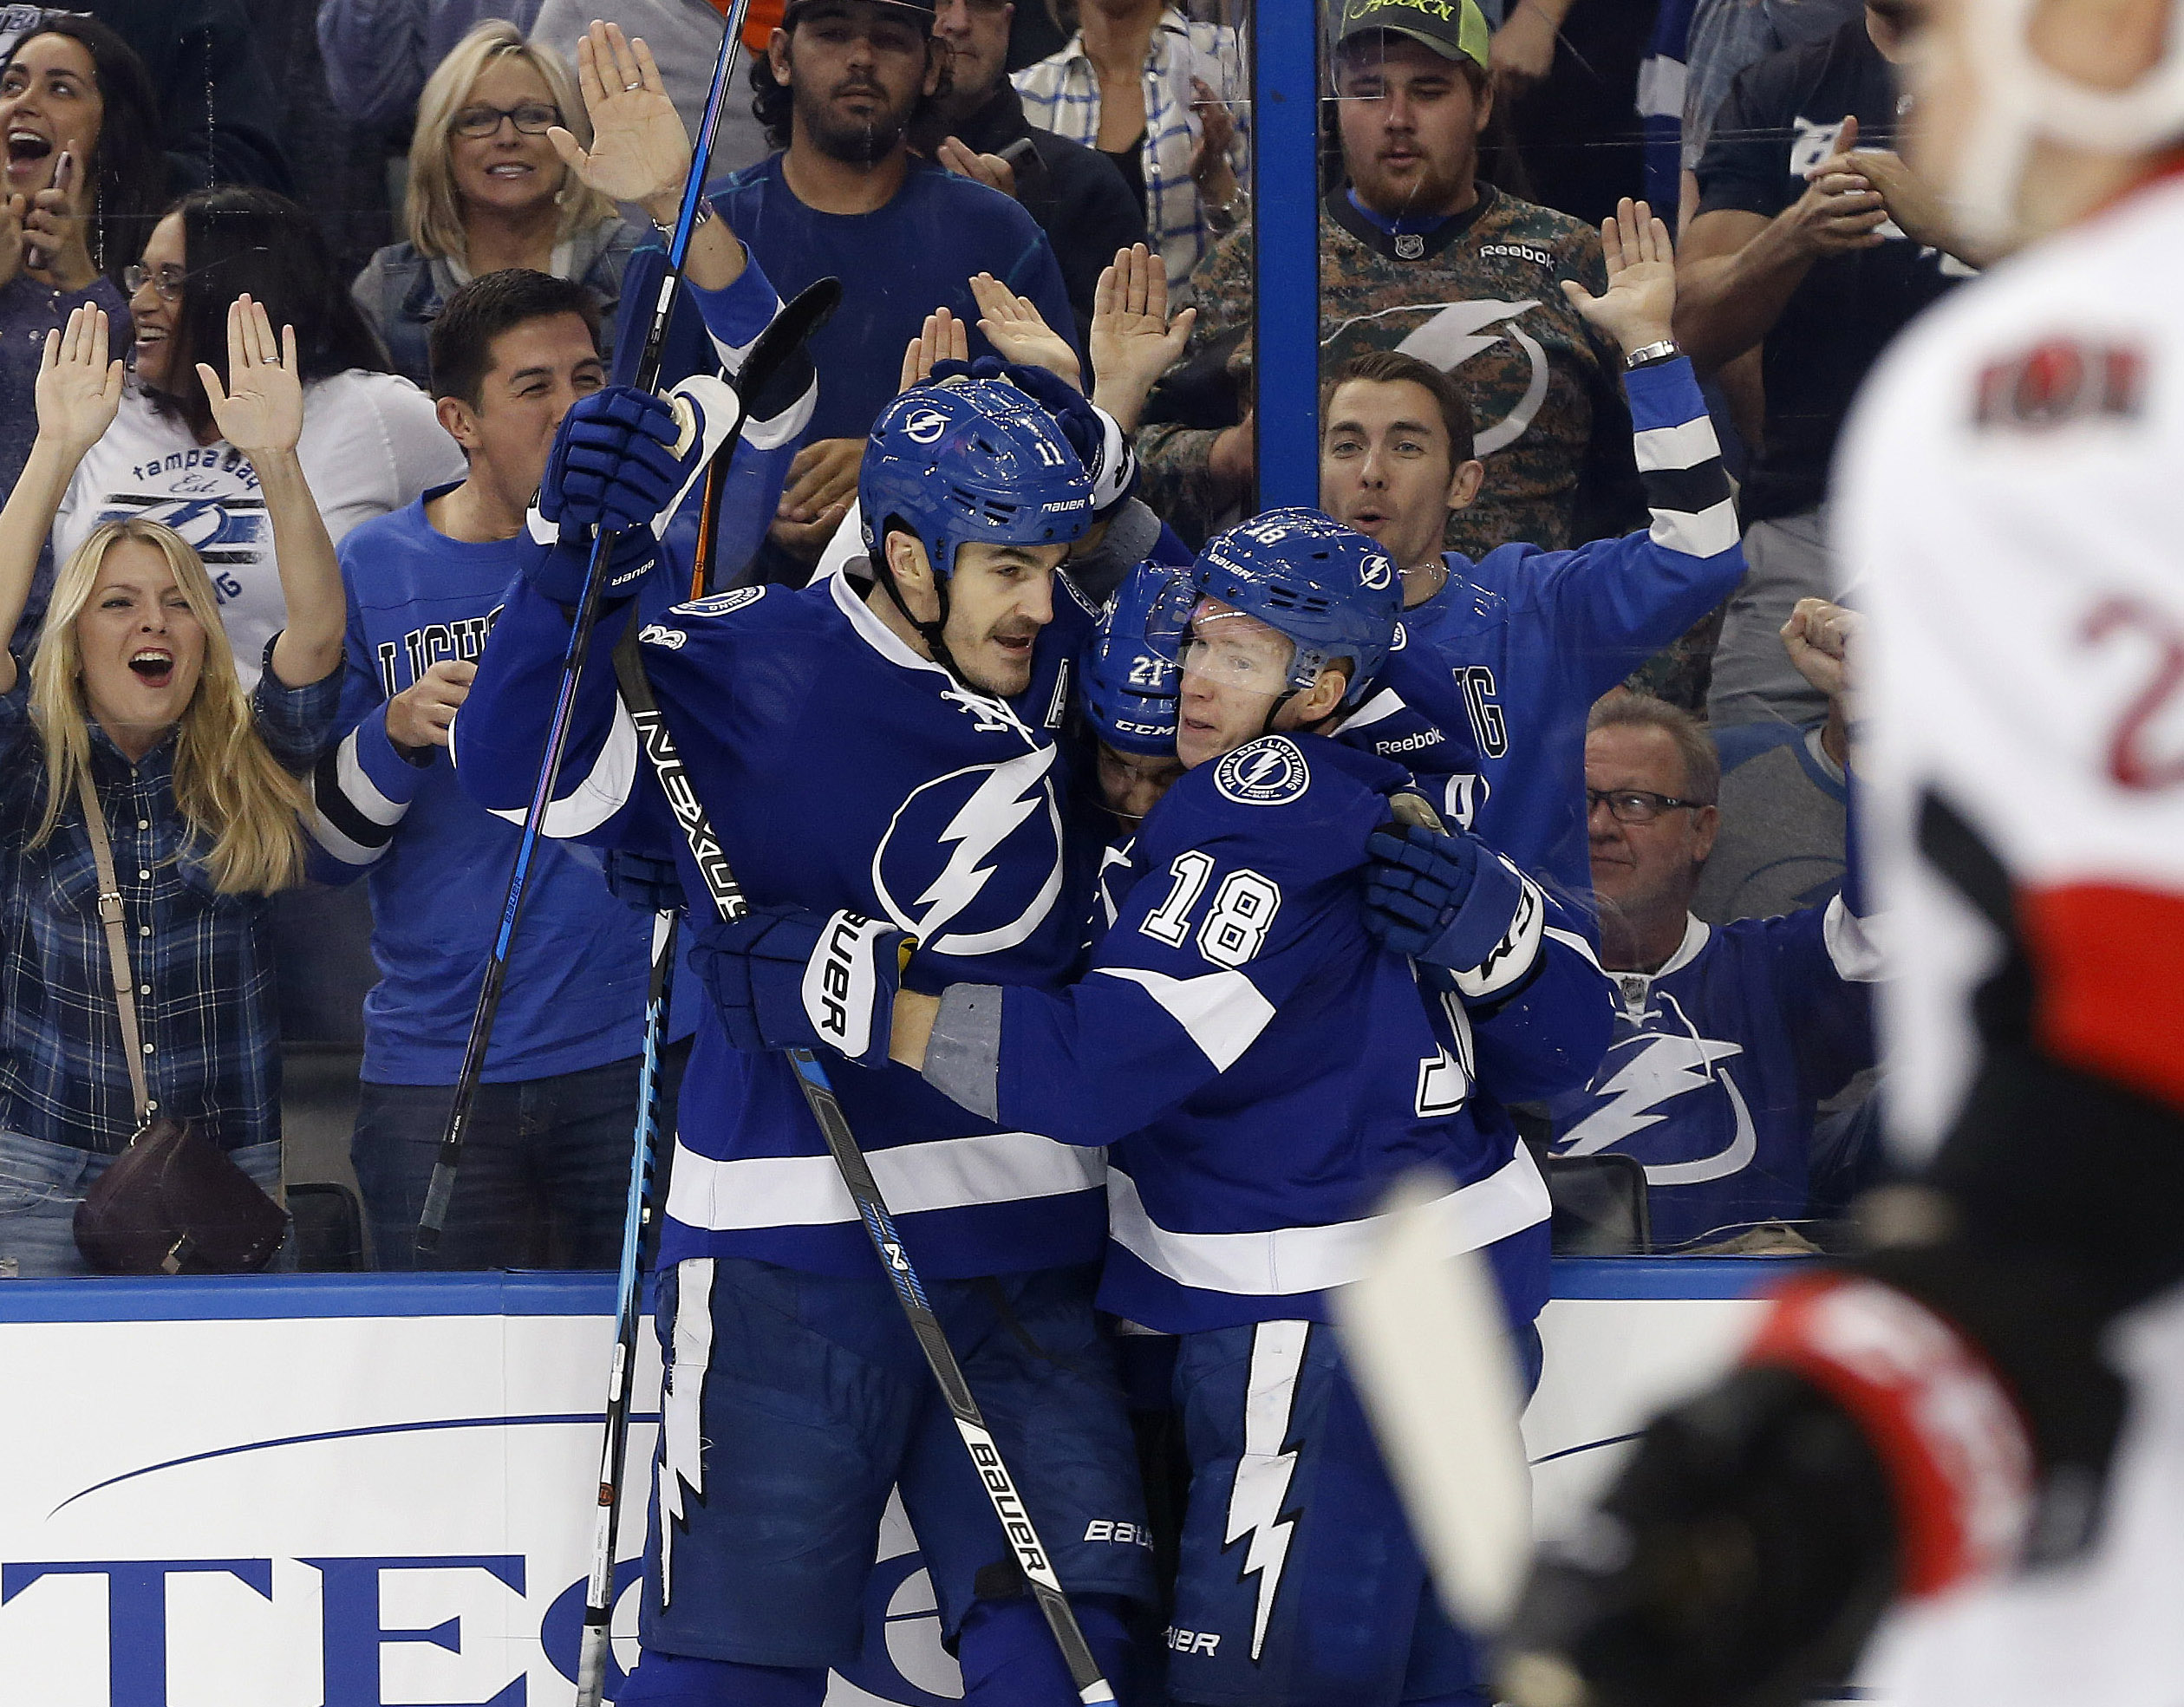 9854474-nhl-ottawa-senators-at-tampa-bay-lightning